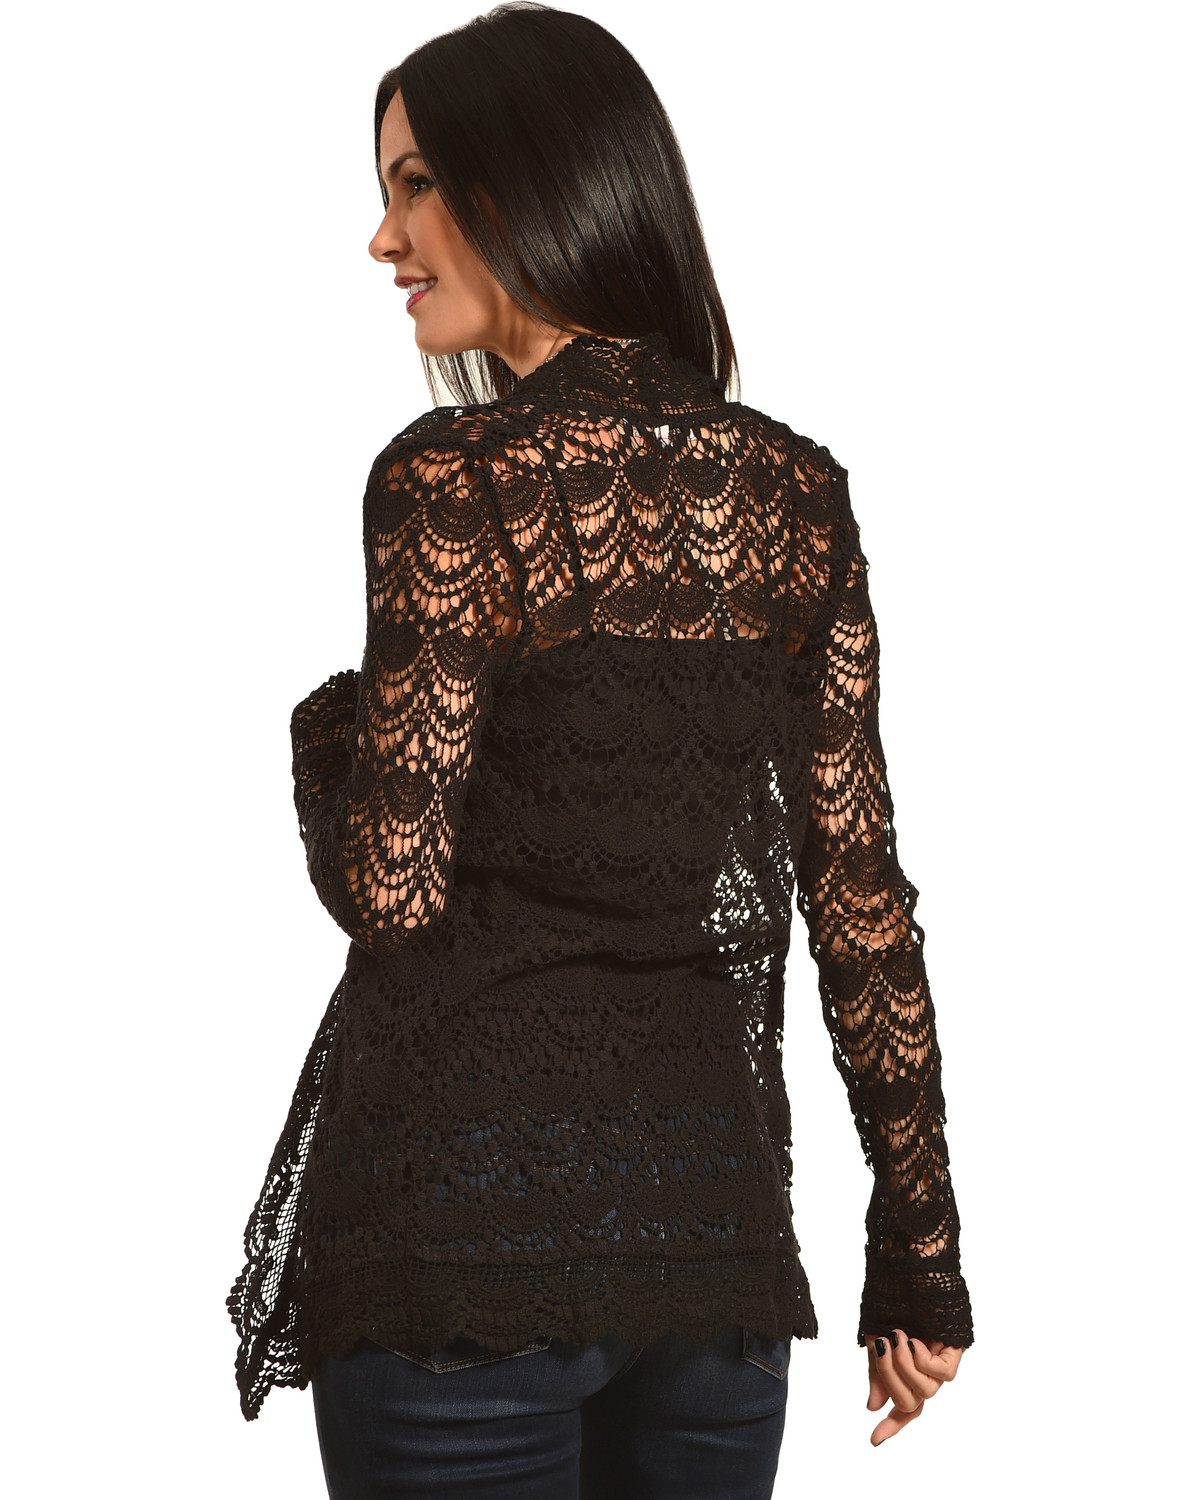 Long Lace Cardigan - Young essence women s long sleeve lace cardigan black hi res